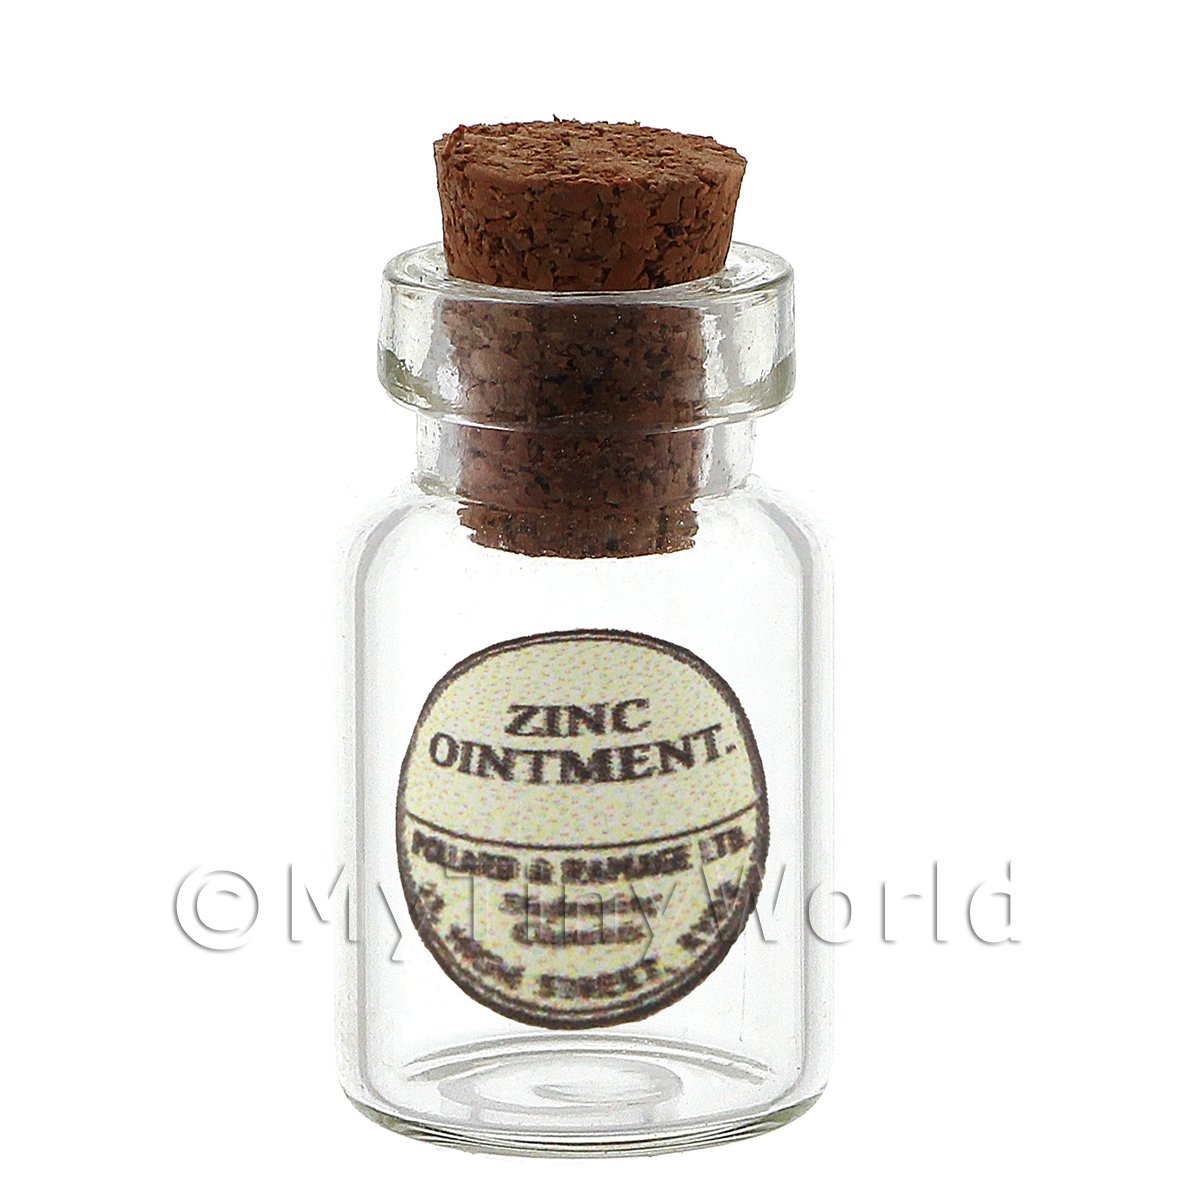 Dolls House Miniature Zinc Ointment Glass Apothecary Ointment Jar